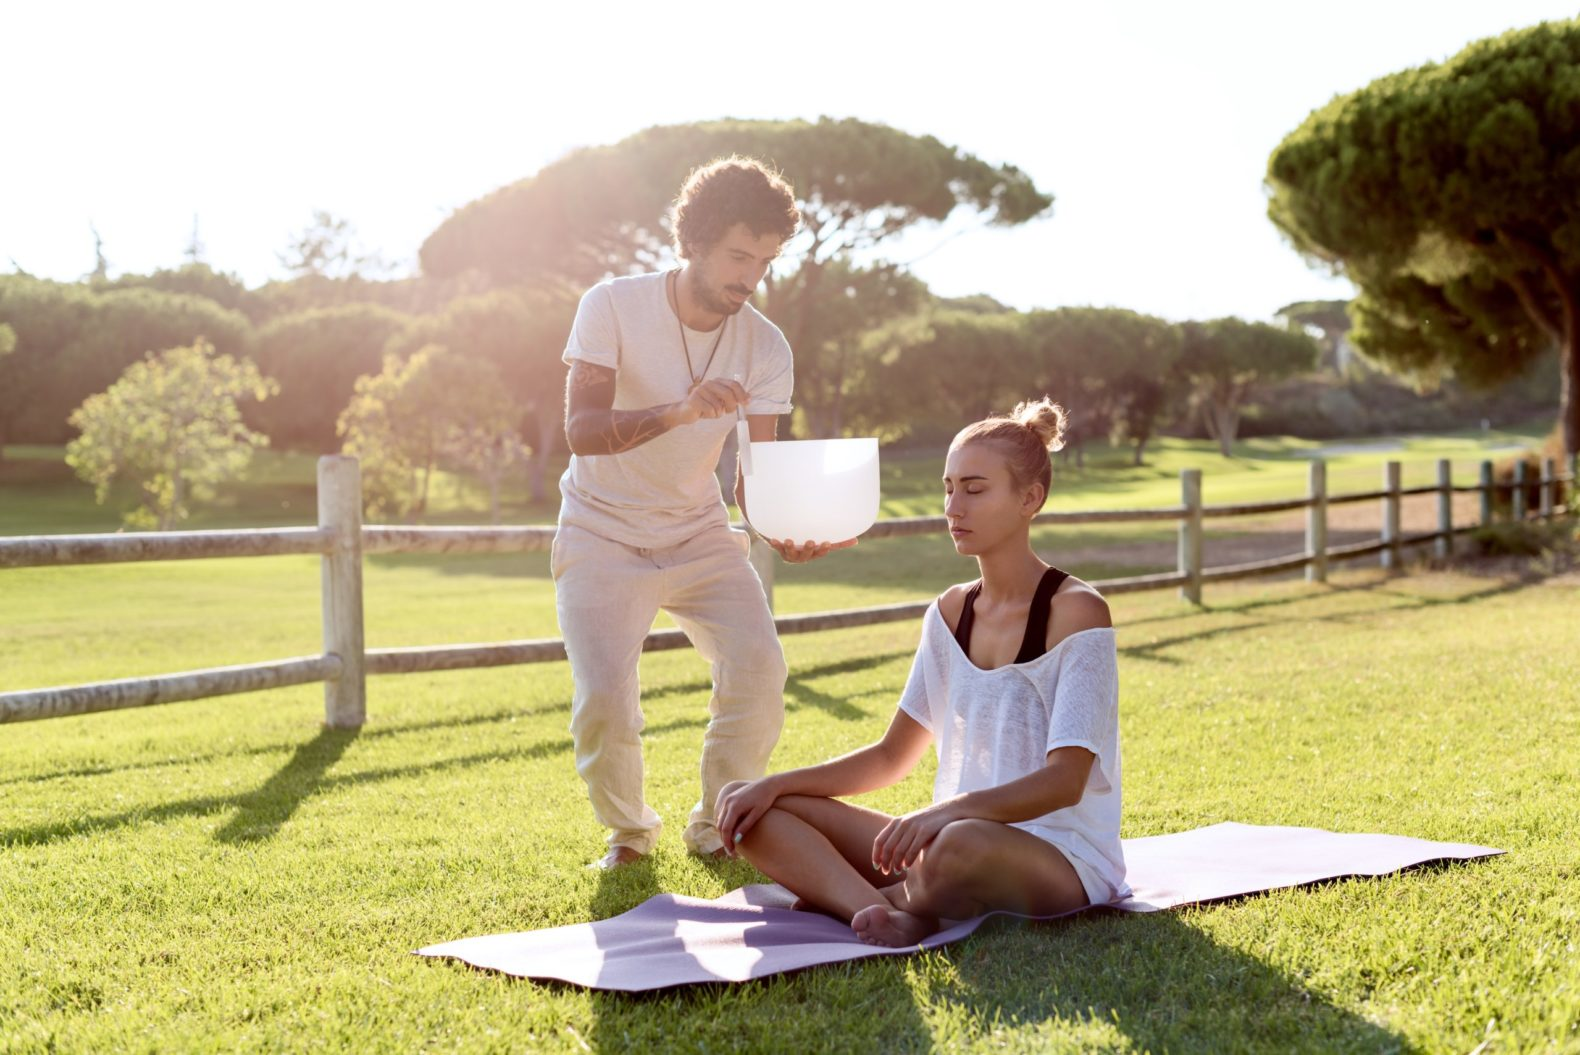 healing-sound-outdoor-nature-woman-treatment-experience-pine-cliffs-resort-portugal